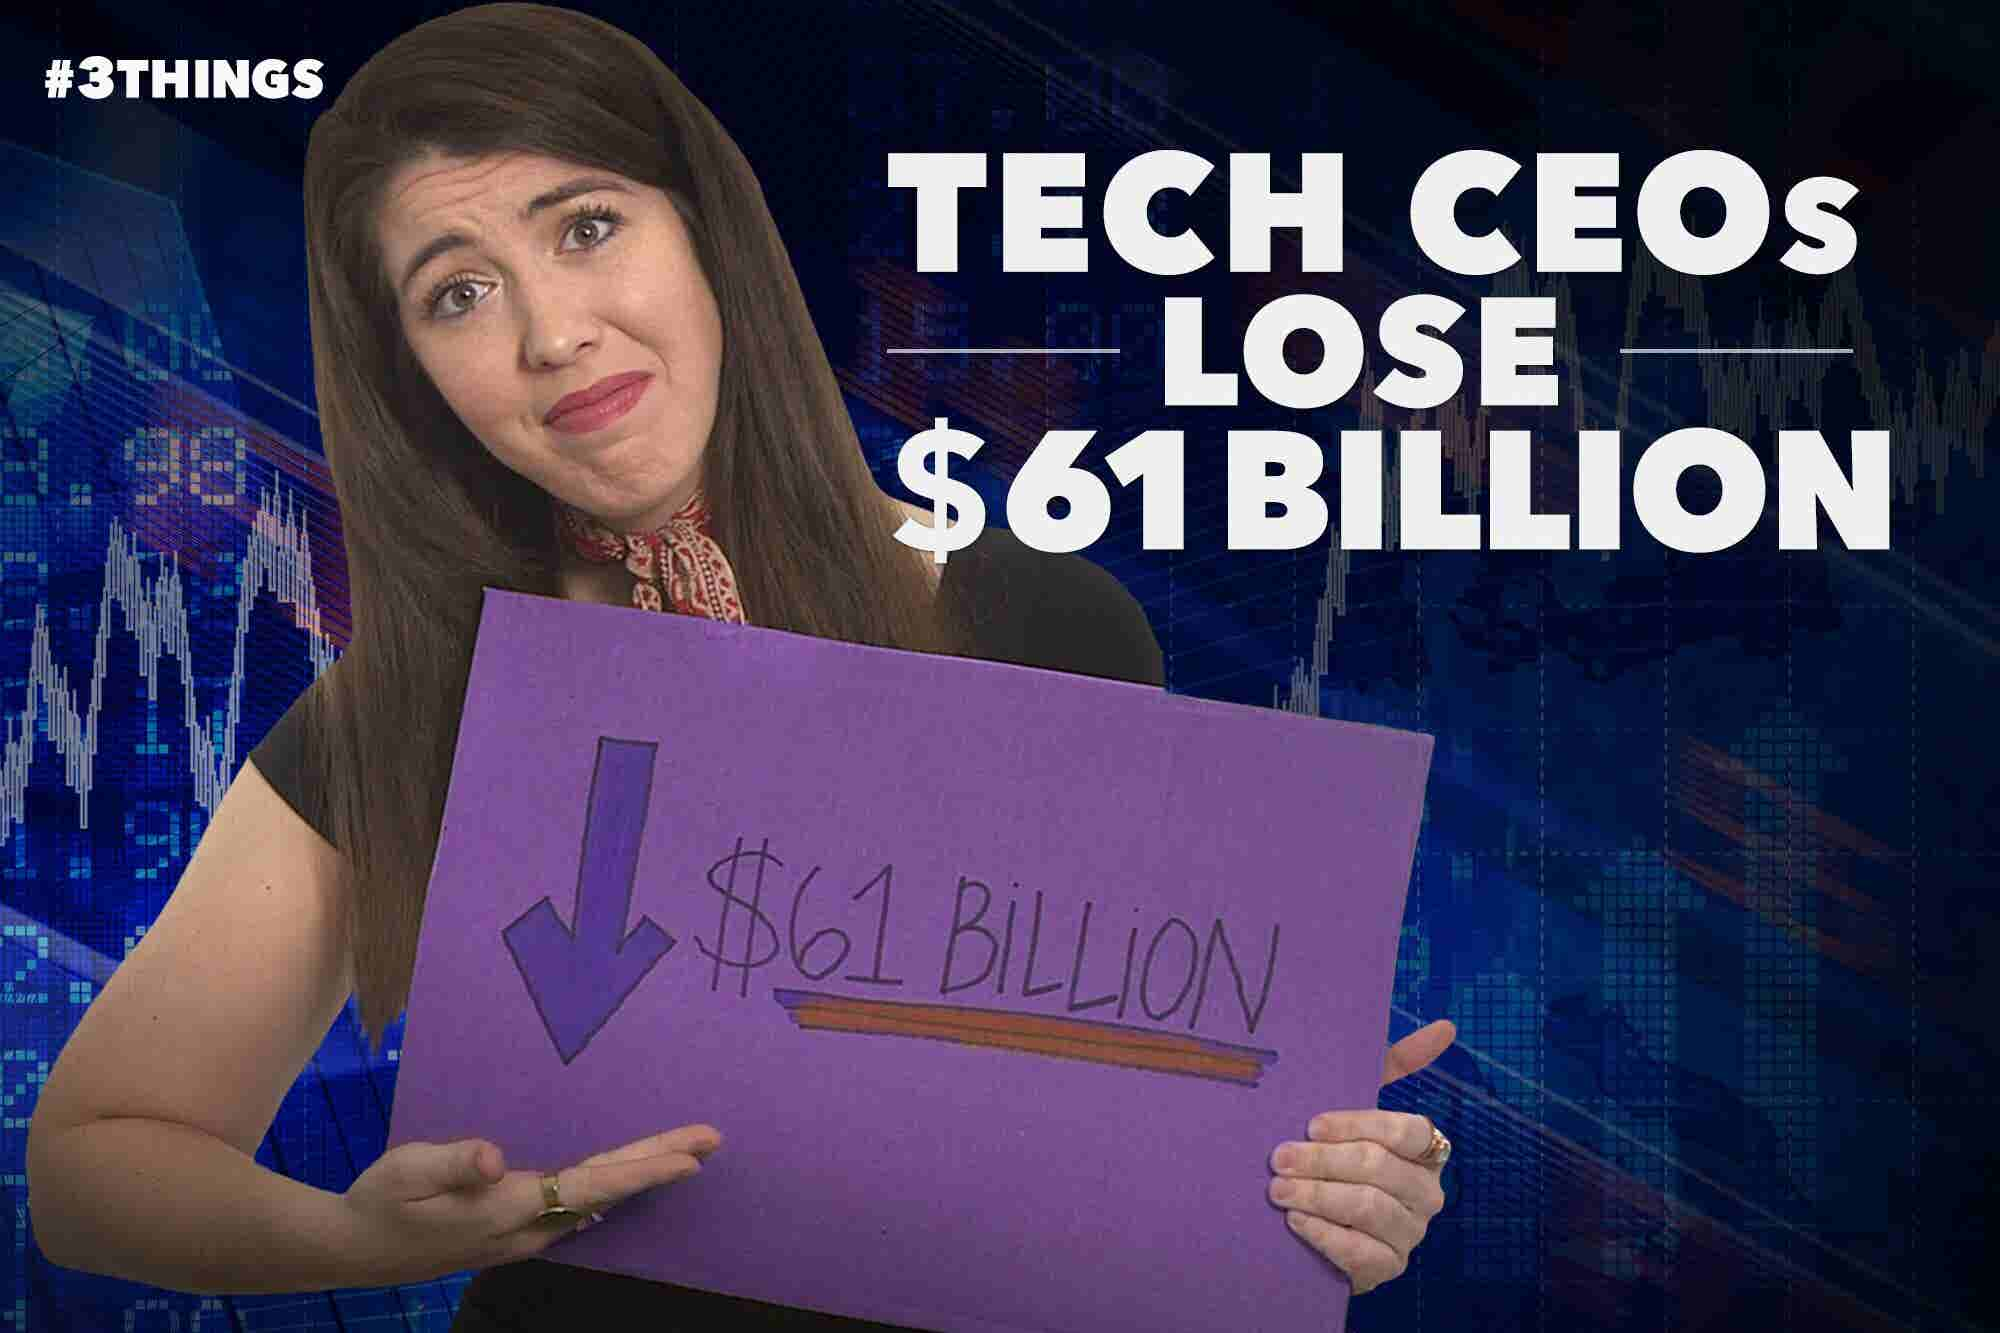 60-Second Video: Tech CEOs Lose $61 Billion